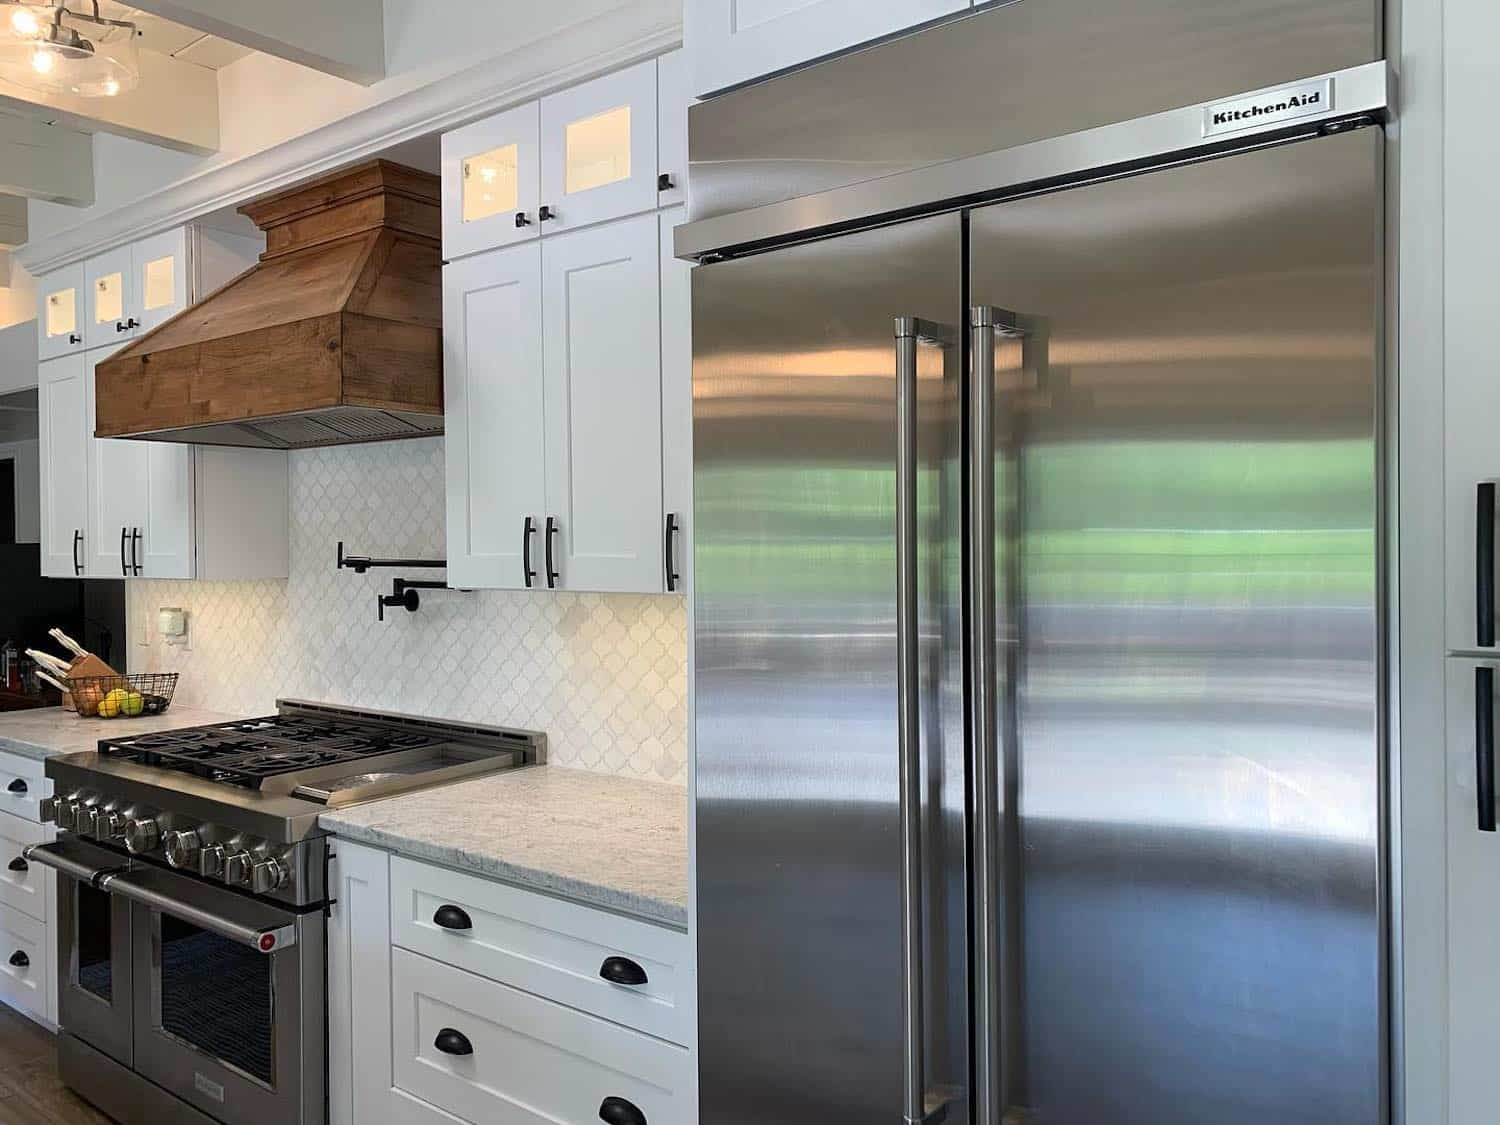 A high-quality kitchen remodel completed by our construction team